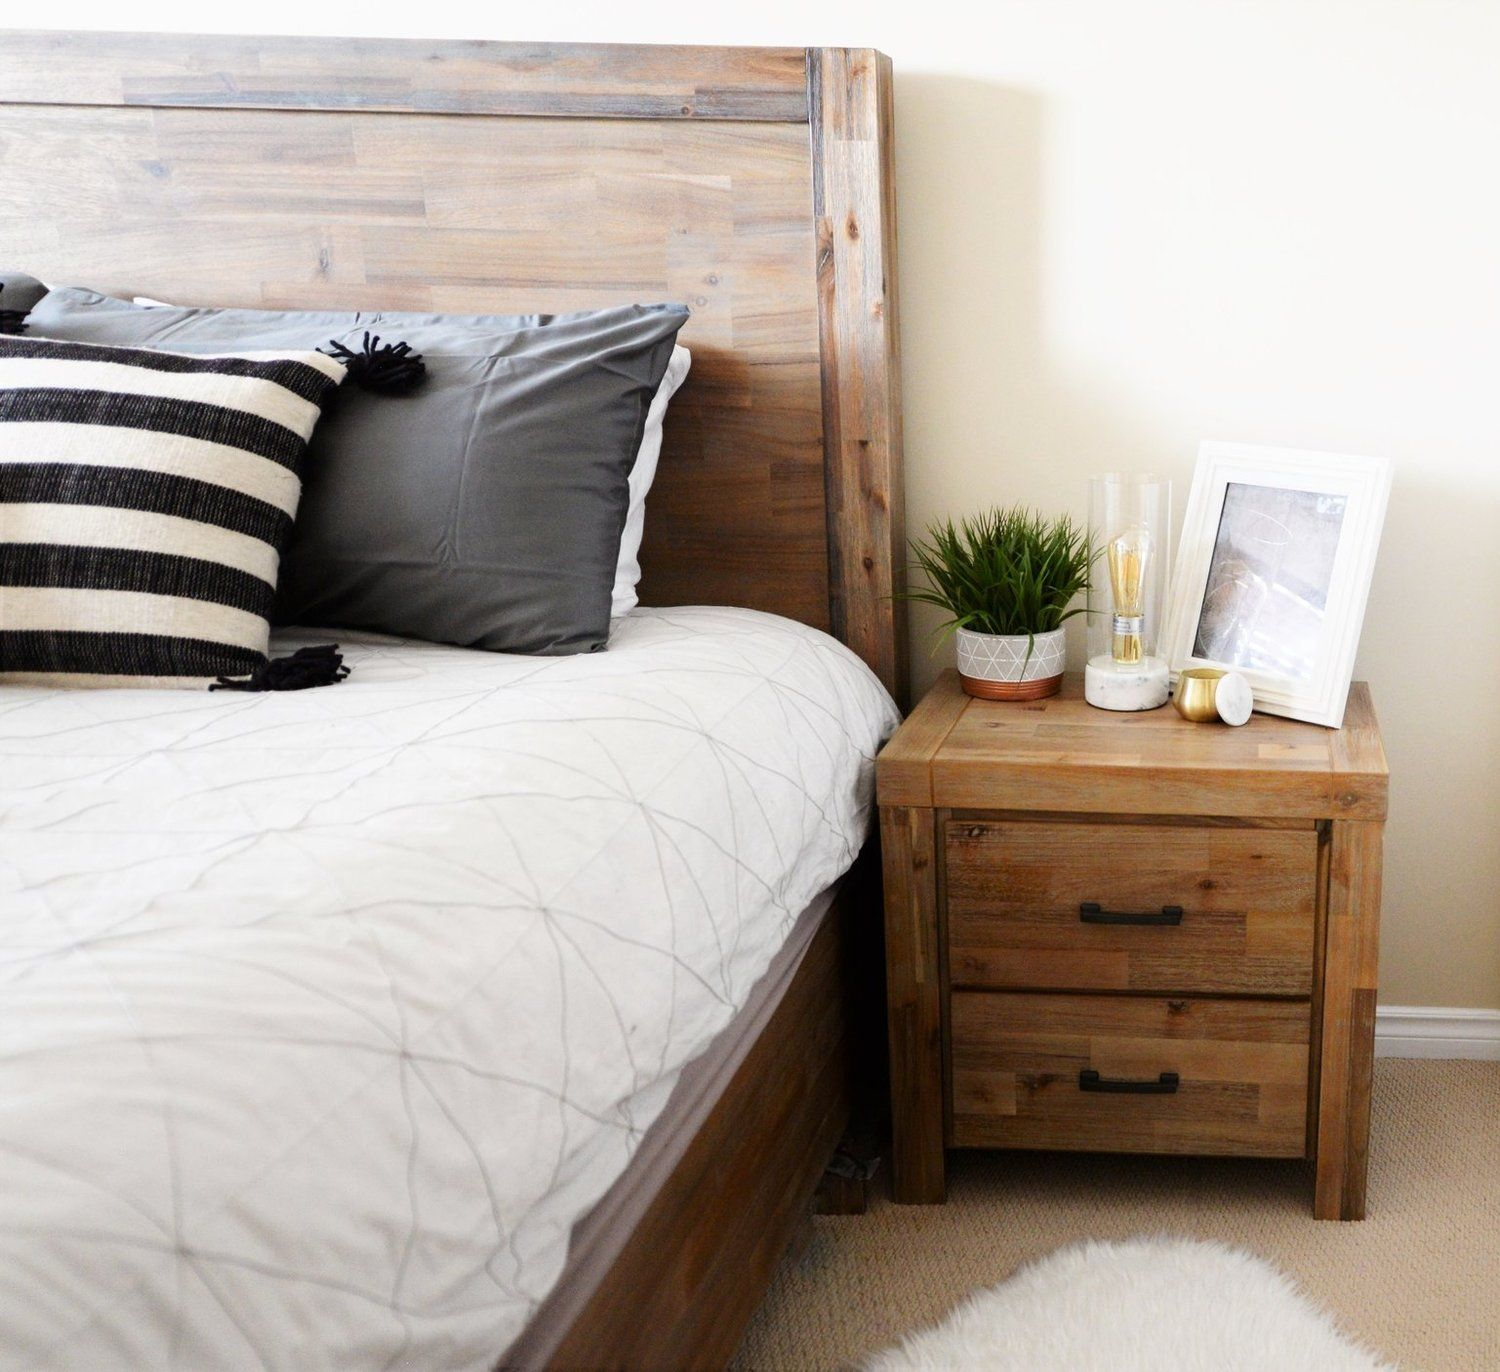 Cosy Bedroom Ideas For A Restful Retreat: How To Create A Cozy Bedroom Retreat